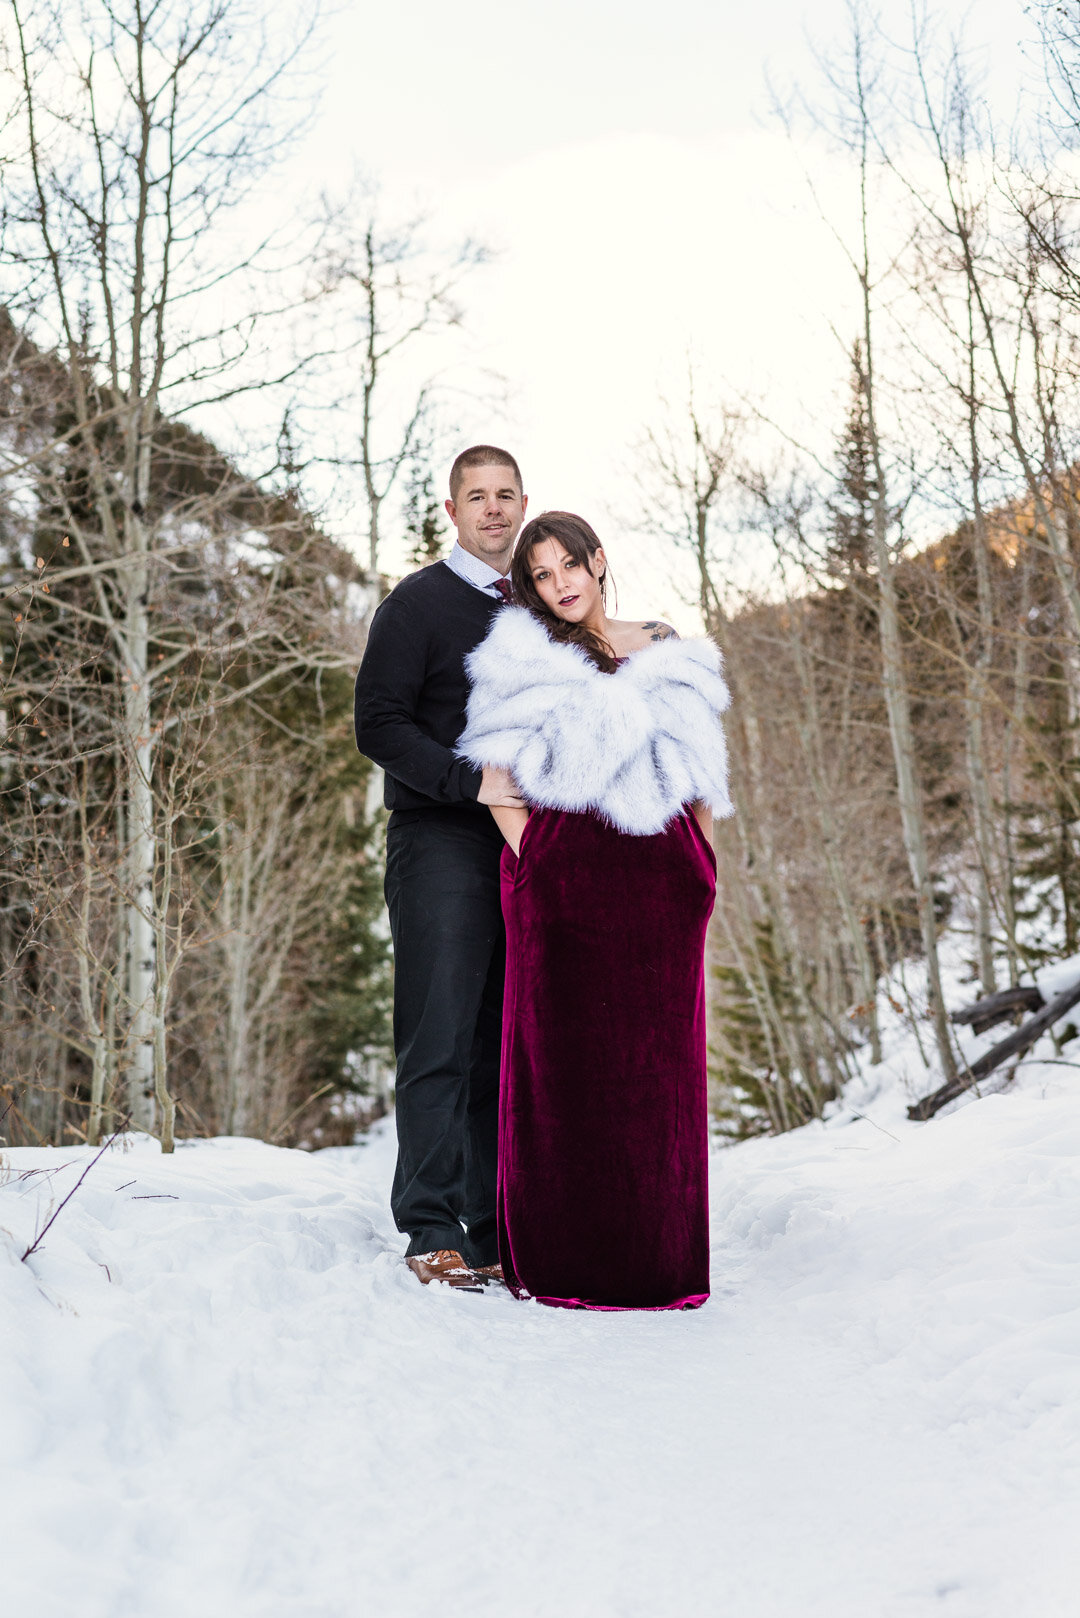 """""""Gabrielle is a great photographer and is very customer oriented. We were extremely pleased with our photo session and with Gabrielle's ability to work with our photo needs. She is very friendly and far exceeded our expectations. We would definitely use her again if in the area and highly recommend her to others."""""""